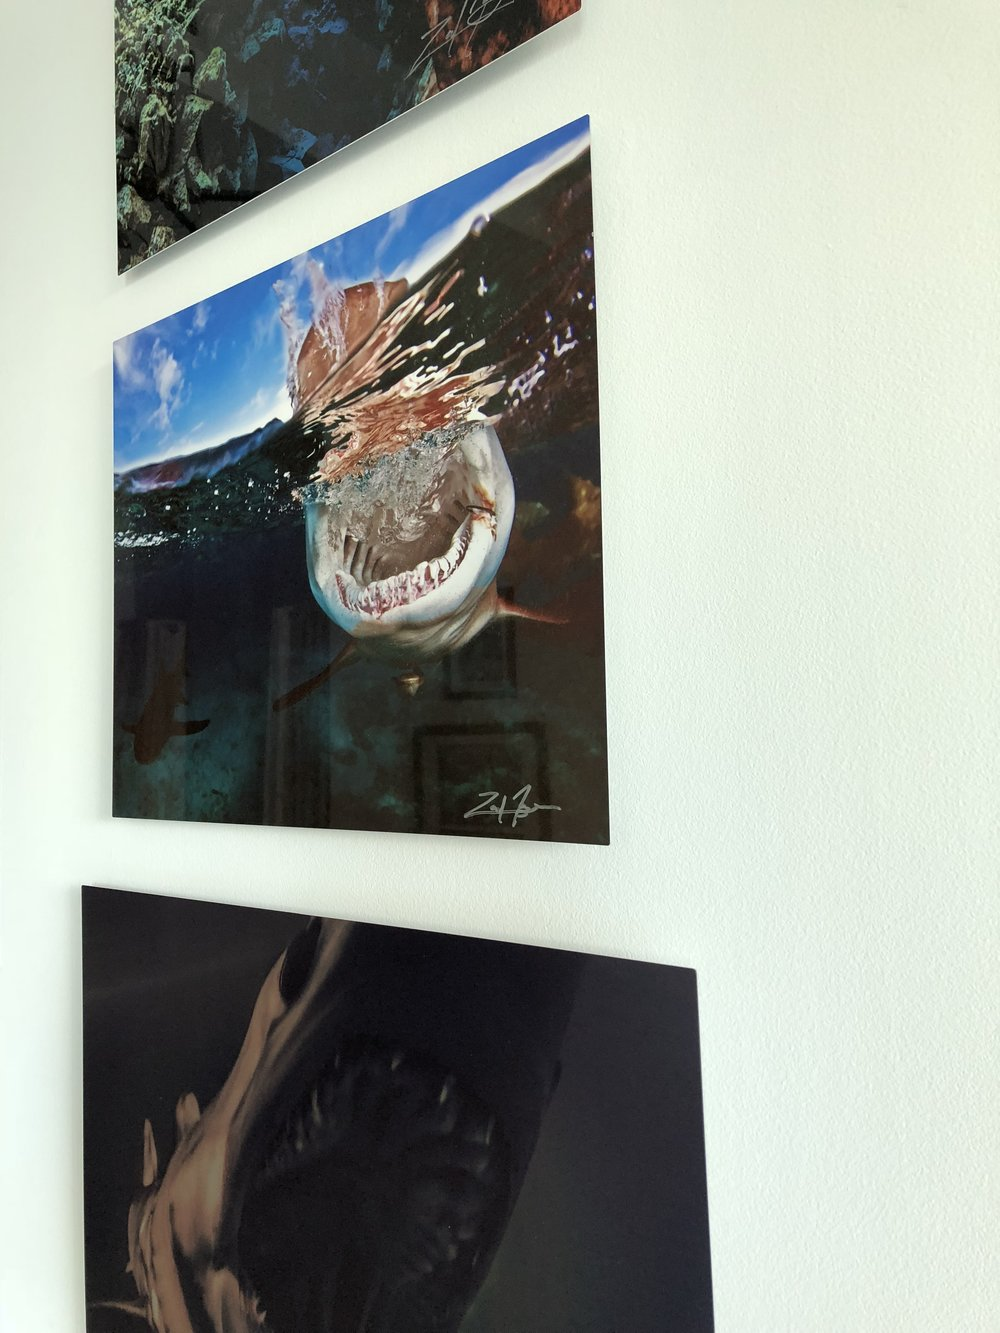 The reflective quality of our aluminum prints adds luminous color, depth, and unsurpassed high resolution detail for a stunning contemporary look, no frames required -